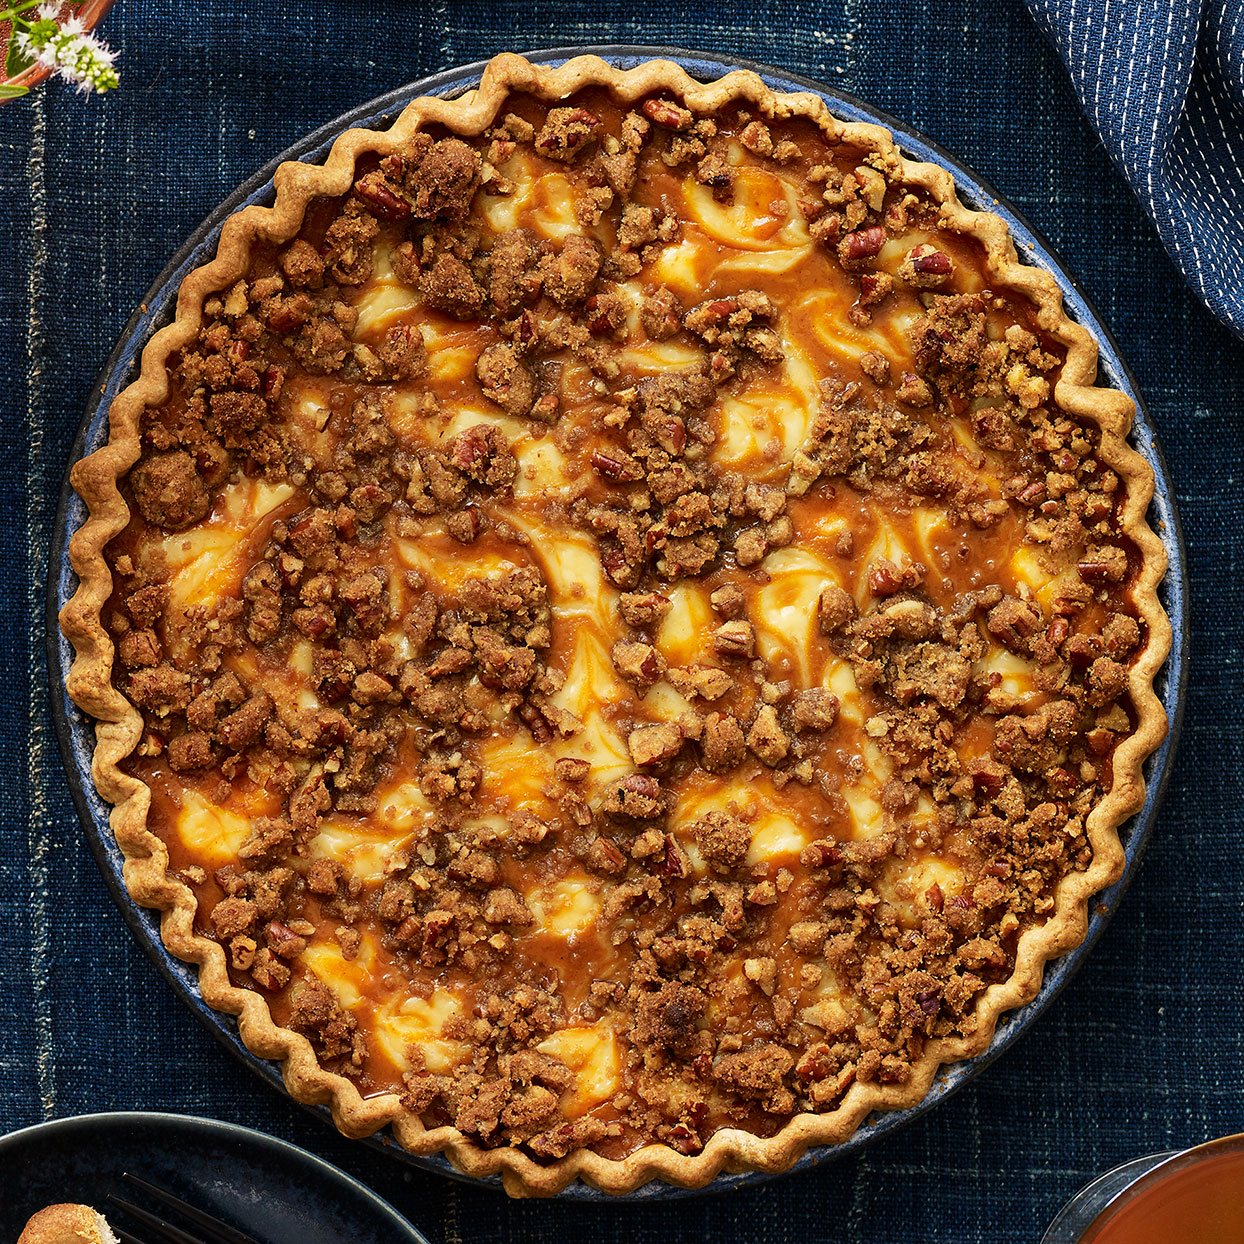 This riff on the Thanksgiving favorite combines a traditional pumpkin pie filling with swirls of sweetened cream cheese. And since it's only Thanksgiving once a year, we've topped it all off with a buttery spiced-pecan topping. This easy pie recipe will please anyone at your table this holiday.